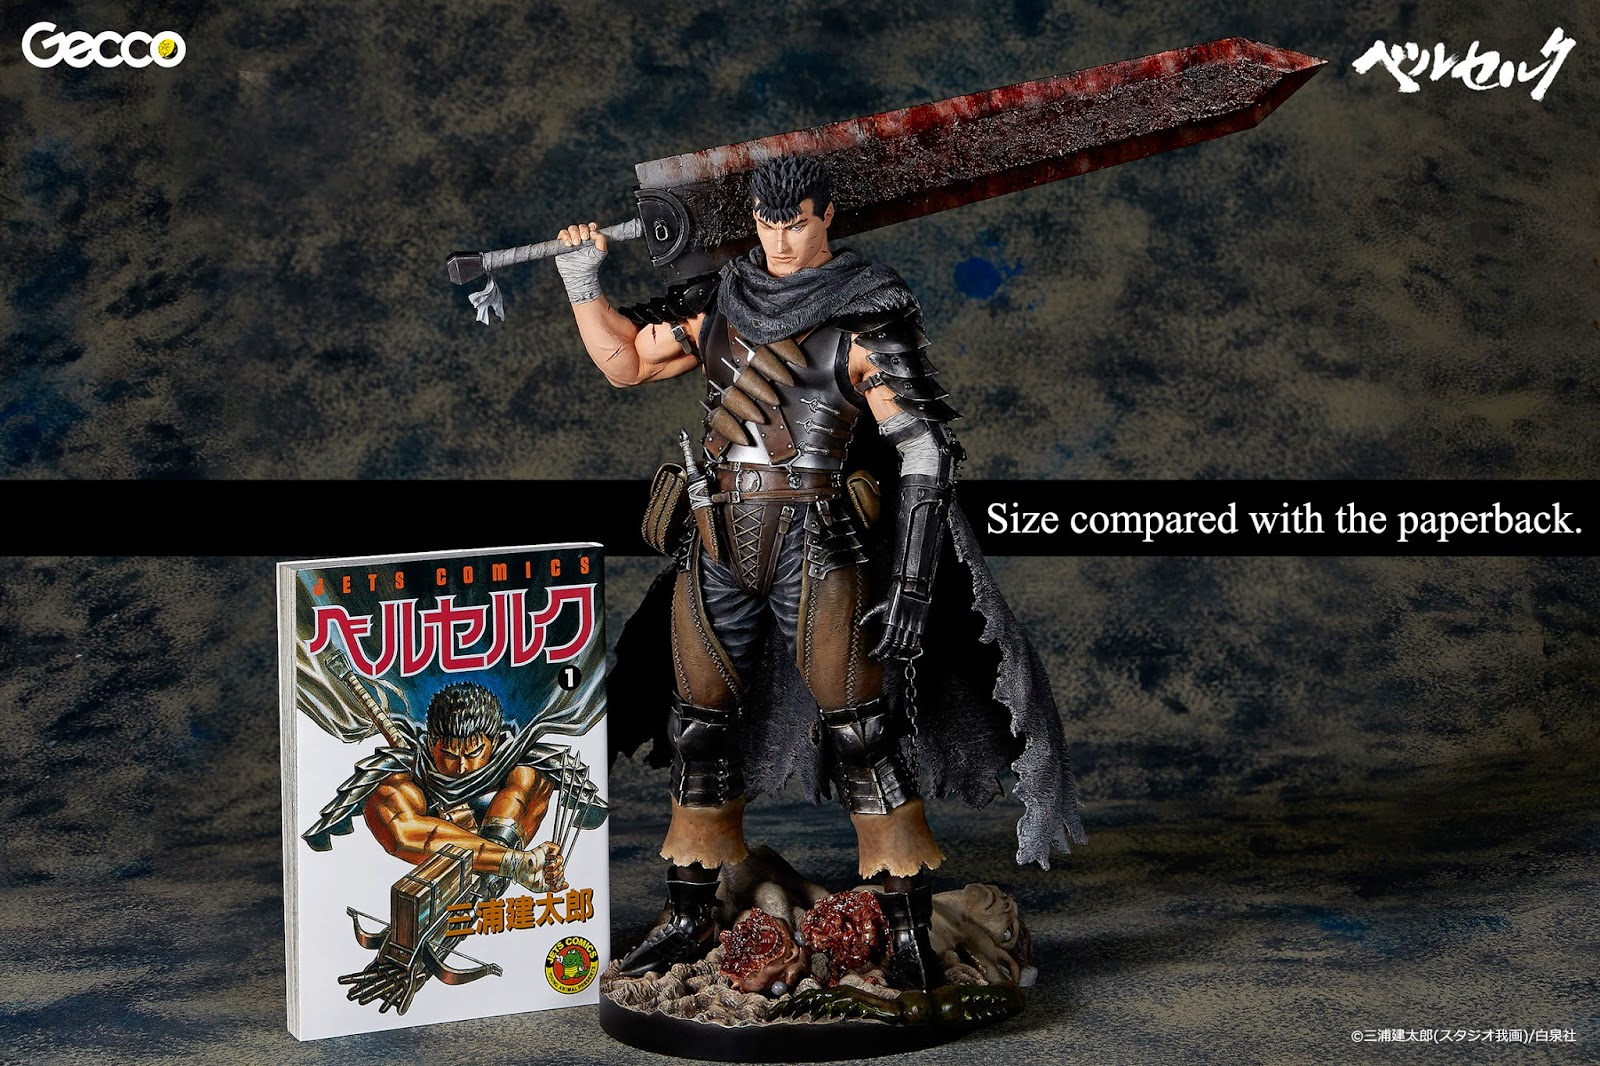 Collecting Toyz: Gecco's Berserk/Guts 1/6 Scale Statue